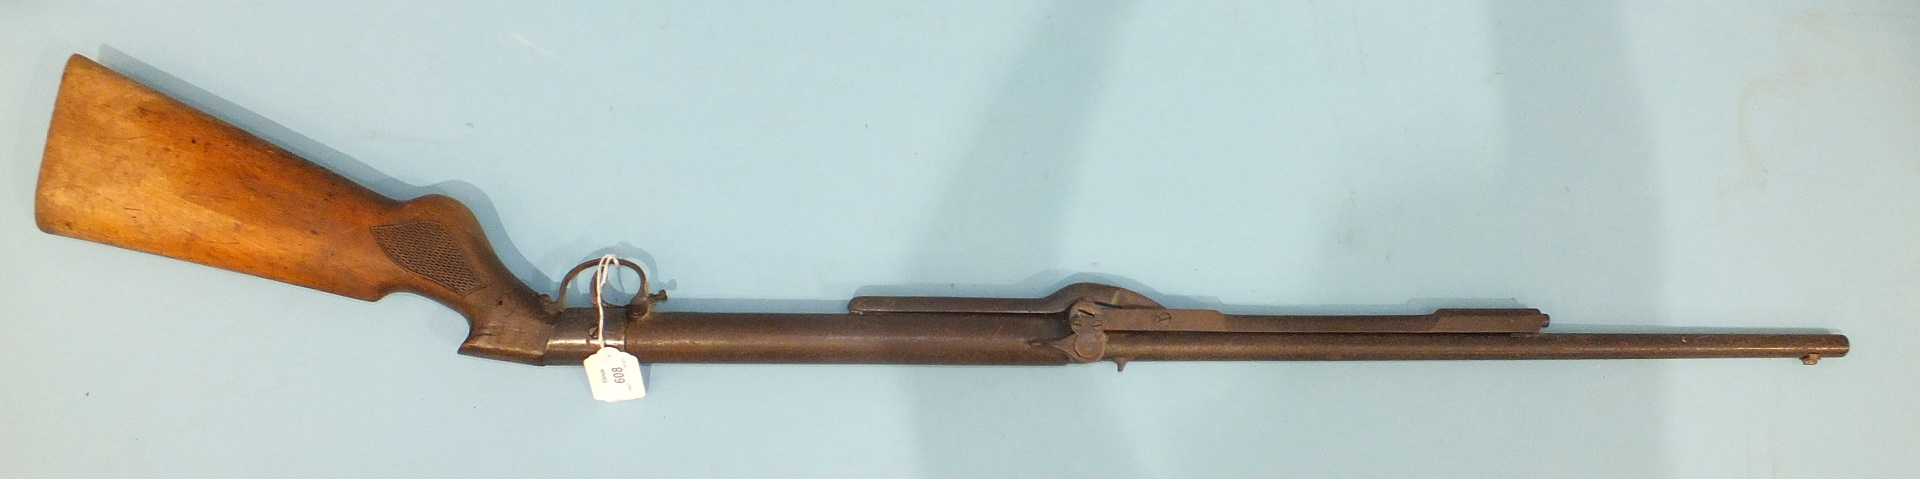 """Lot 608 - An early BSA """"Diana"""" underlever .177 tap-loading air rifle, 114cm overall."""